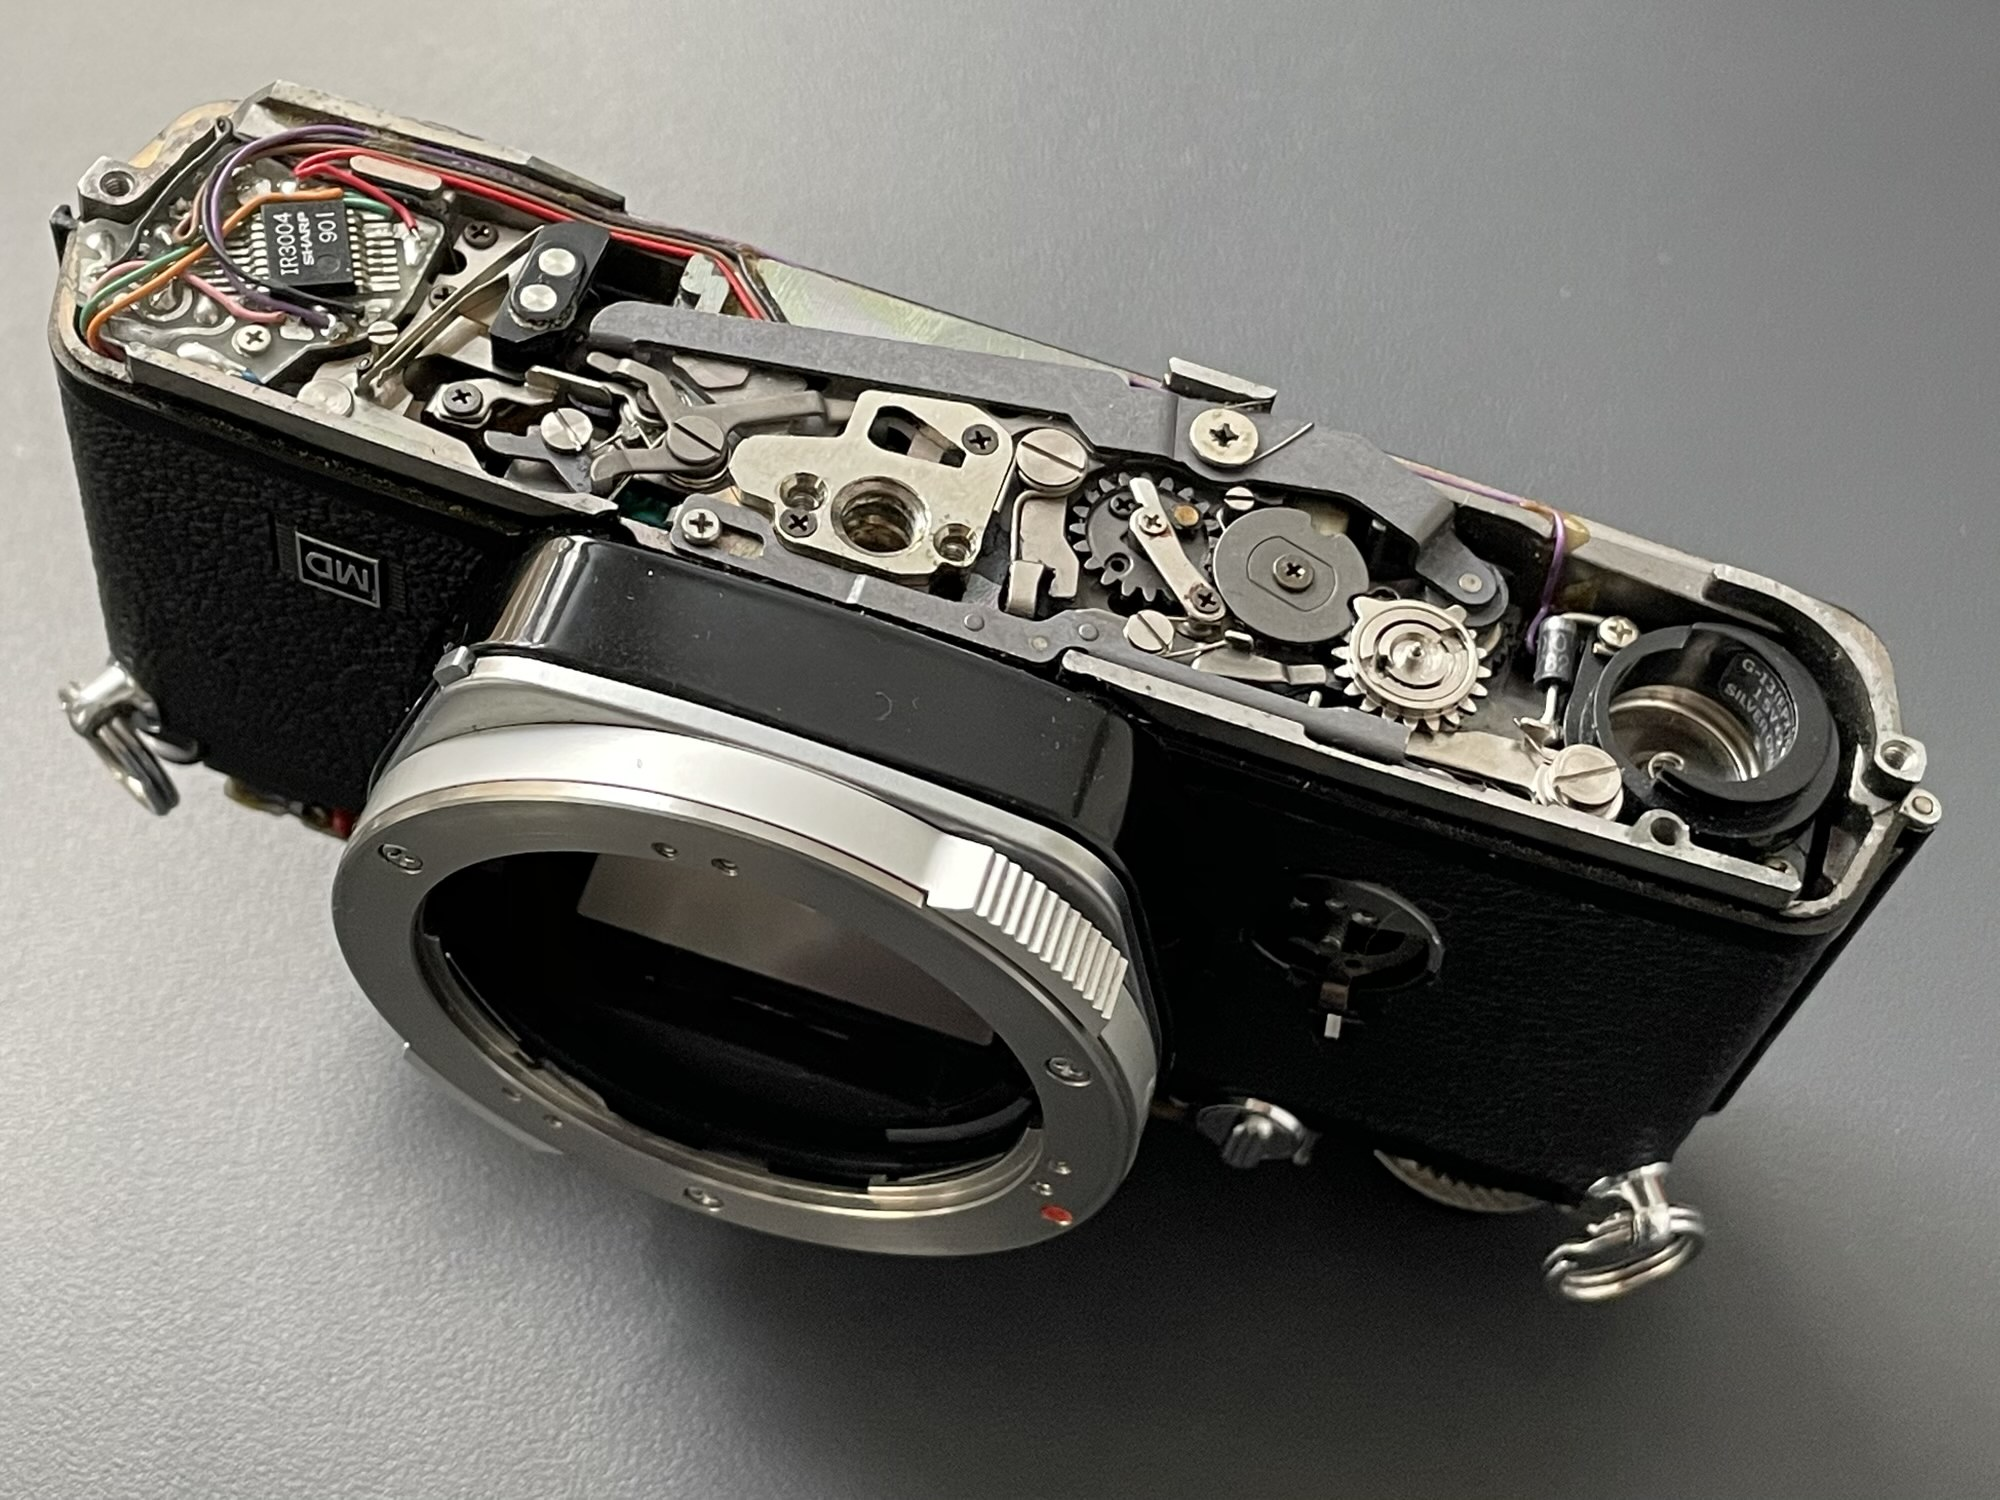 Olympus OM-2n with bottom plate removed